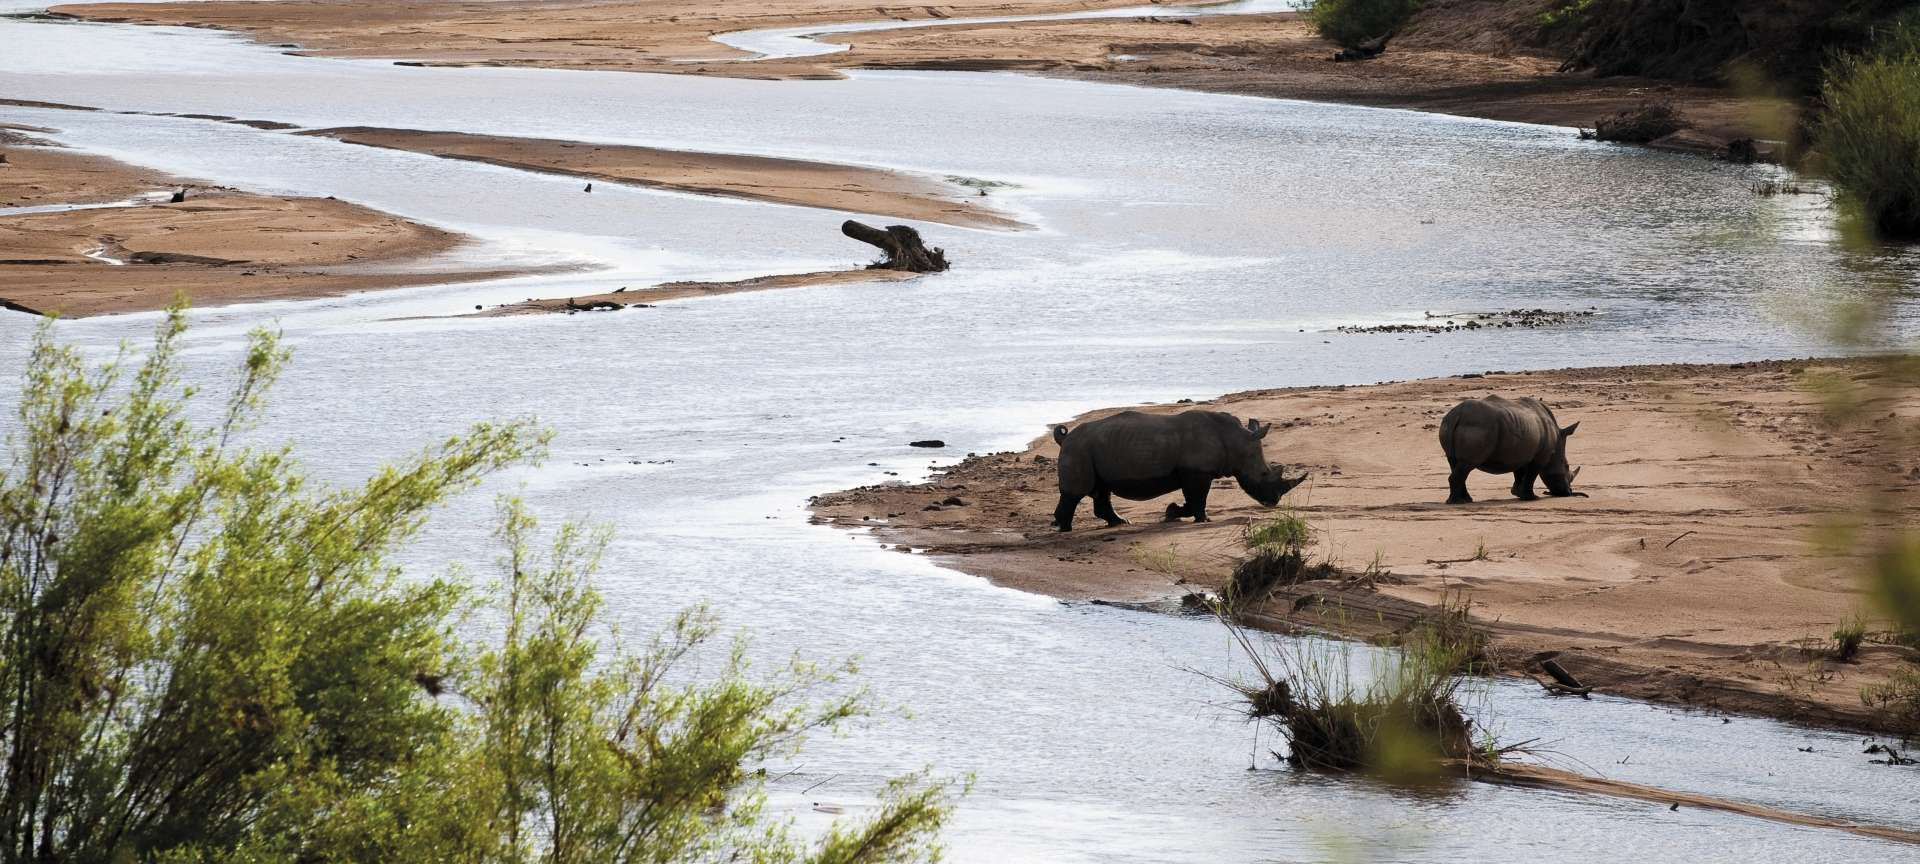 Rhino along the banks of the Khwai River